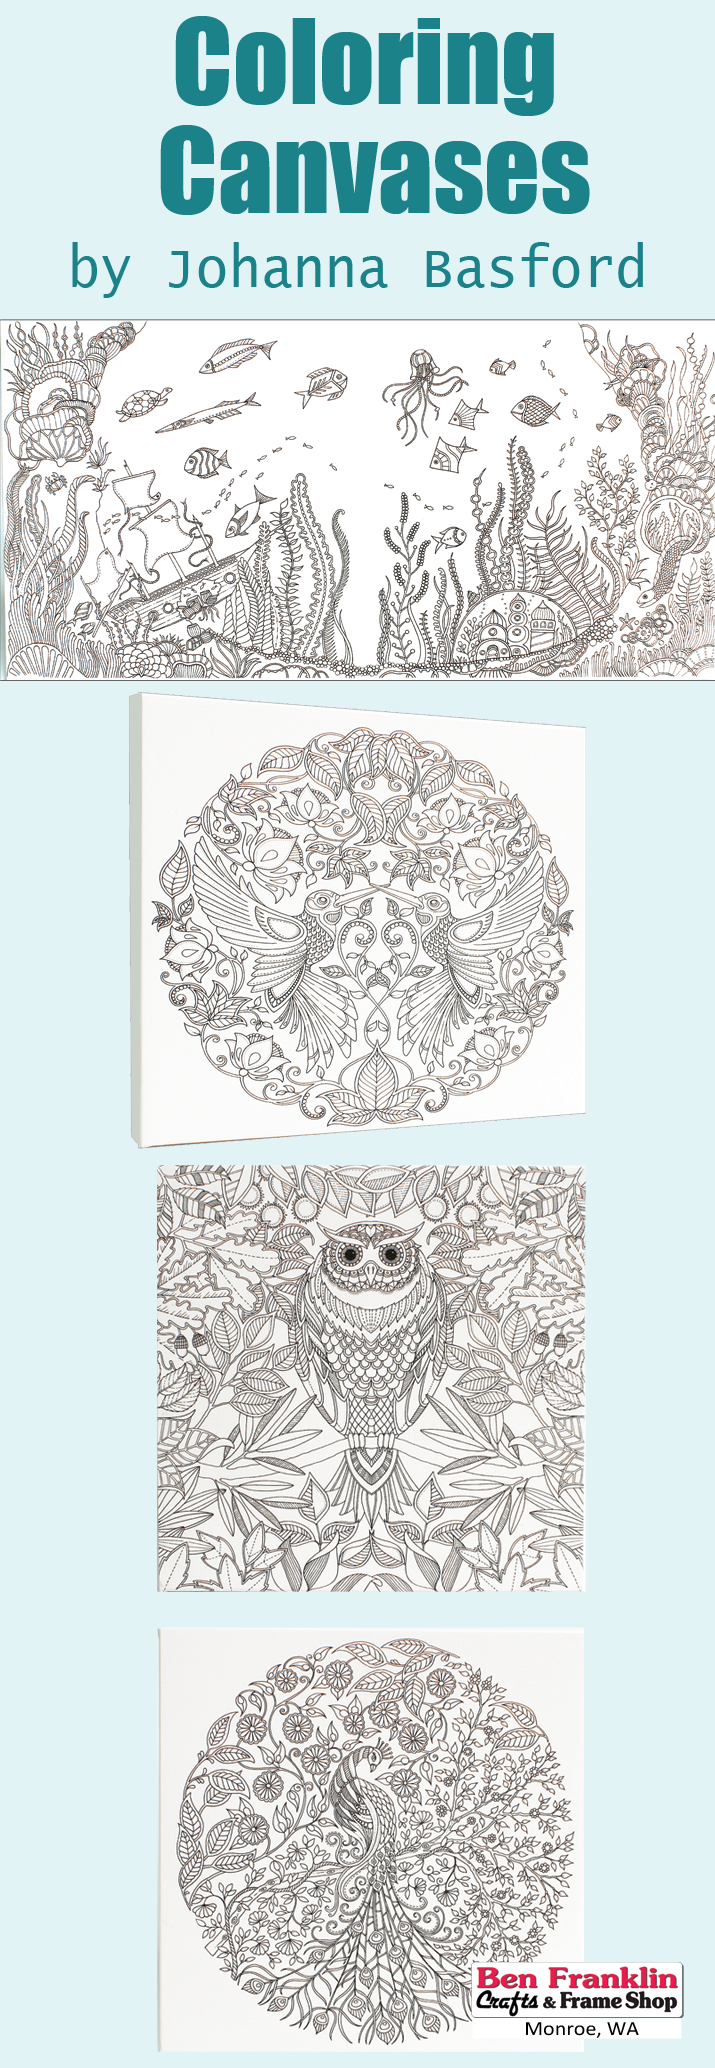 Come In To Check Out All The New Johanna Basford Coloring Canvases Now Available Our